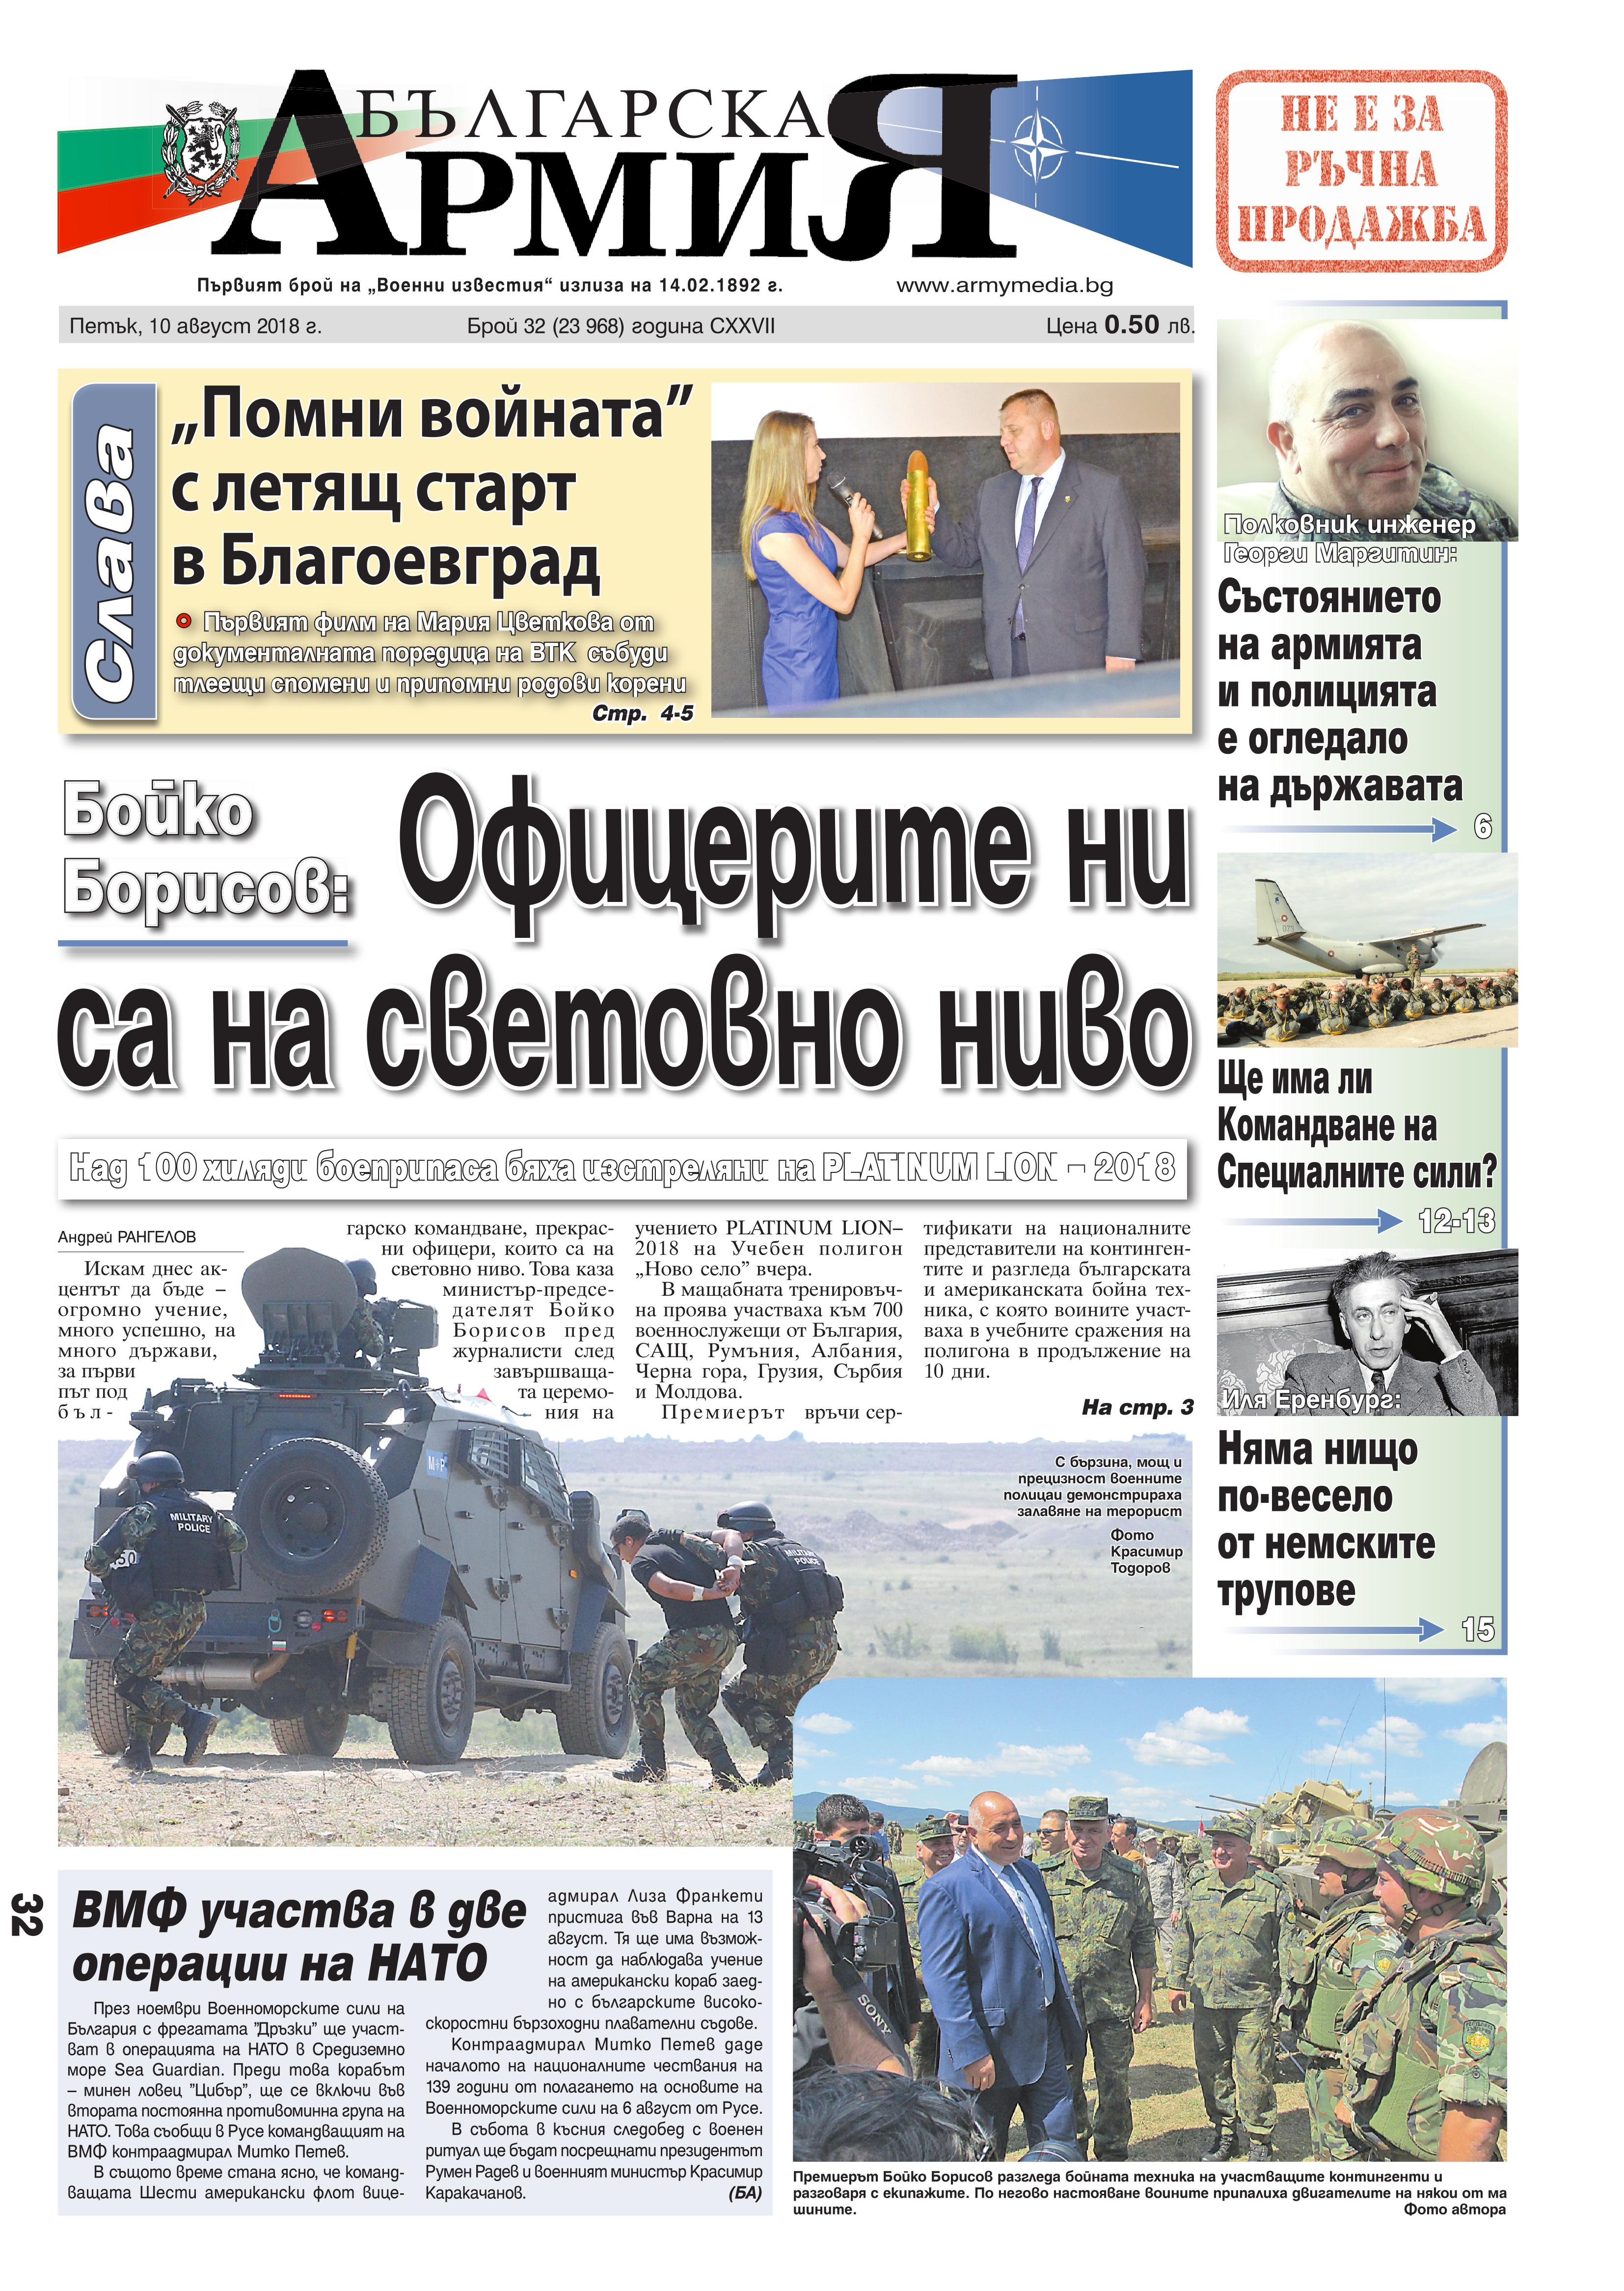 http://armymedia.bg/wp-content/uploads/2015/06/01.page1_-58.jpg